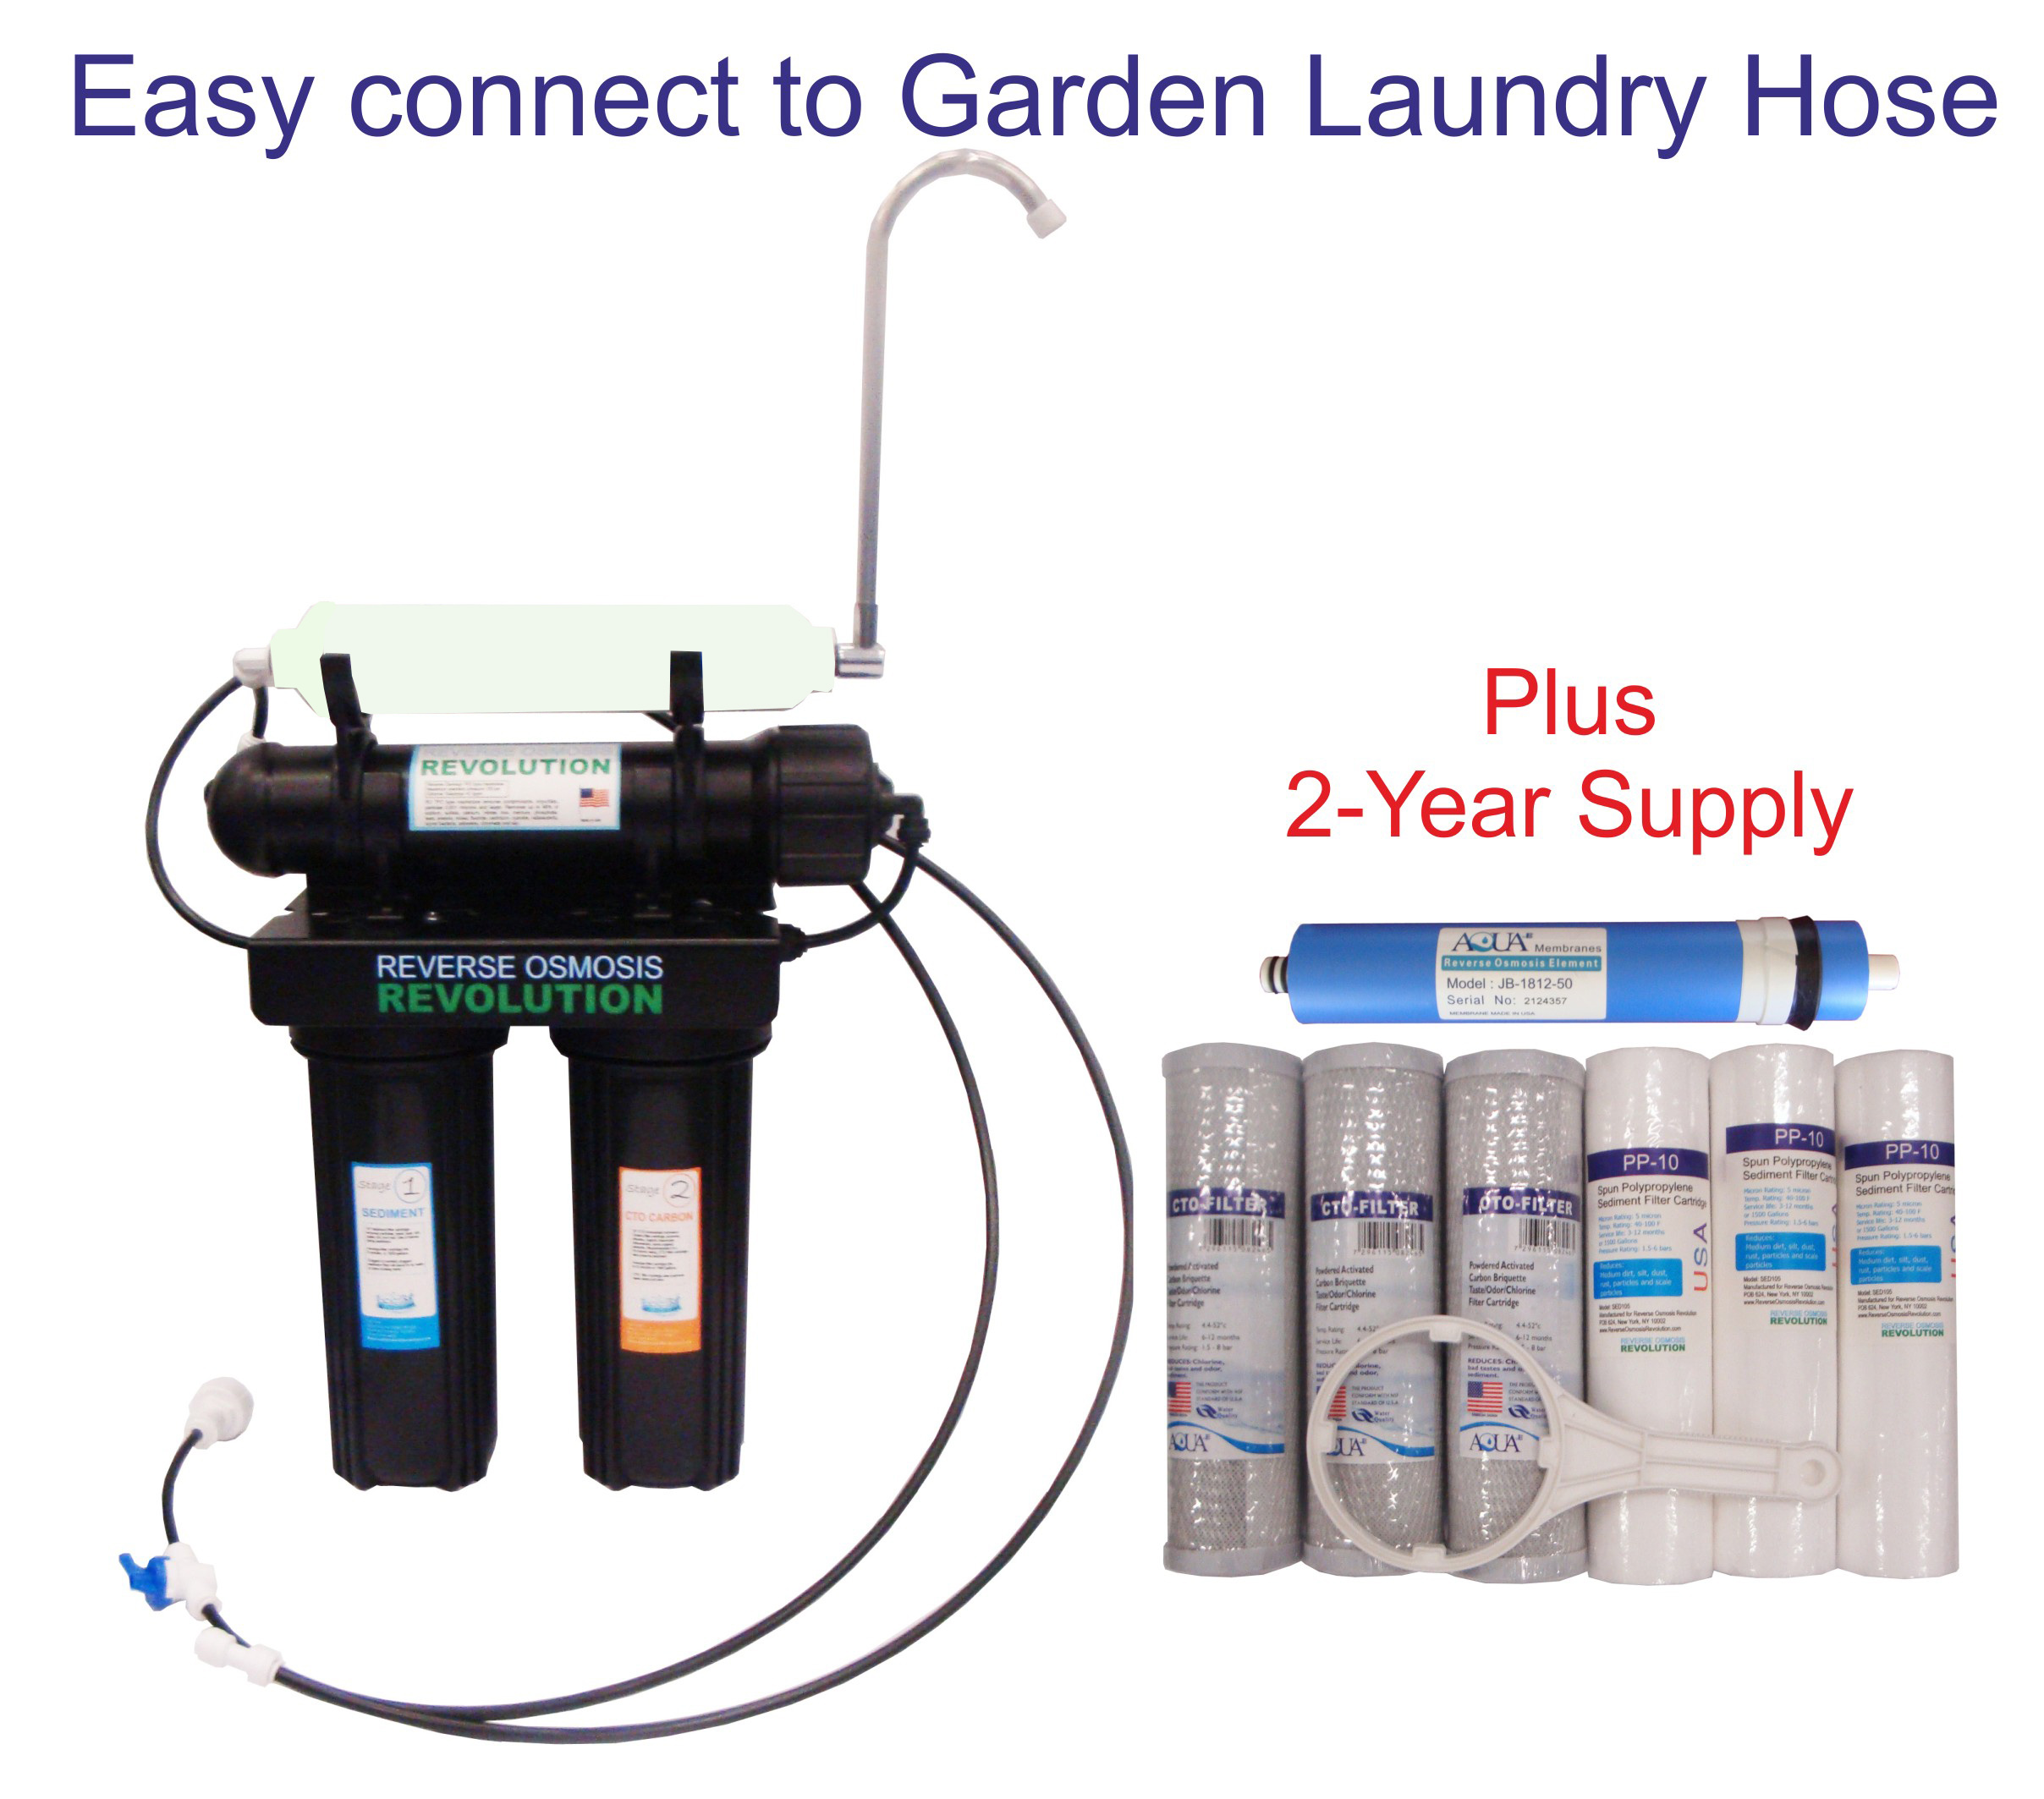 Black Series Expandable Home Drinking Reverse Osmosis System. Garden Laundry Hose connection. 50/75/100/150 GPD Membrane